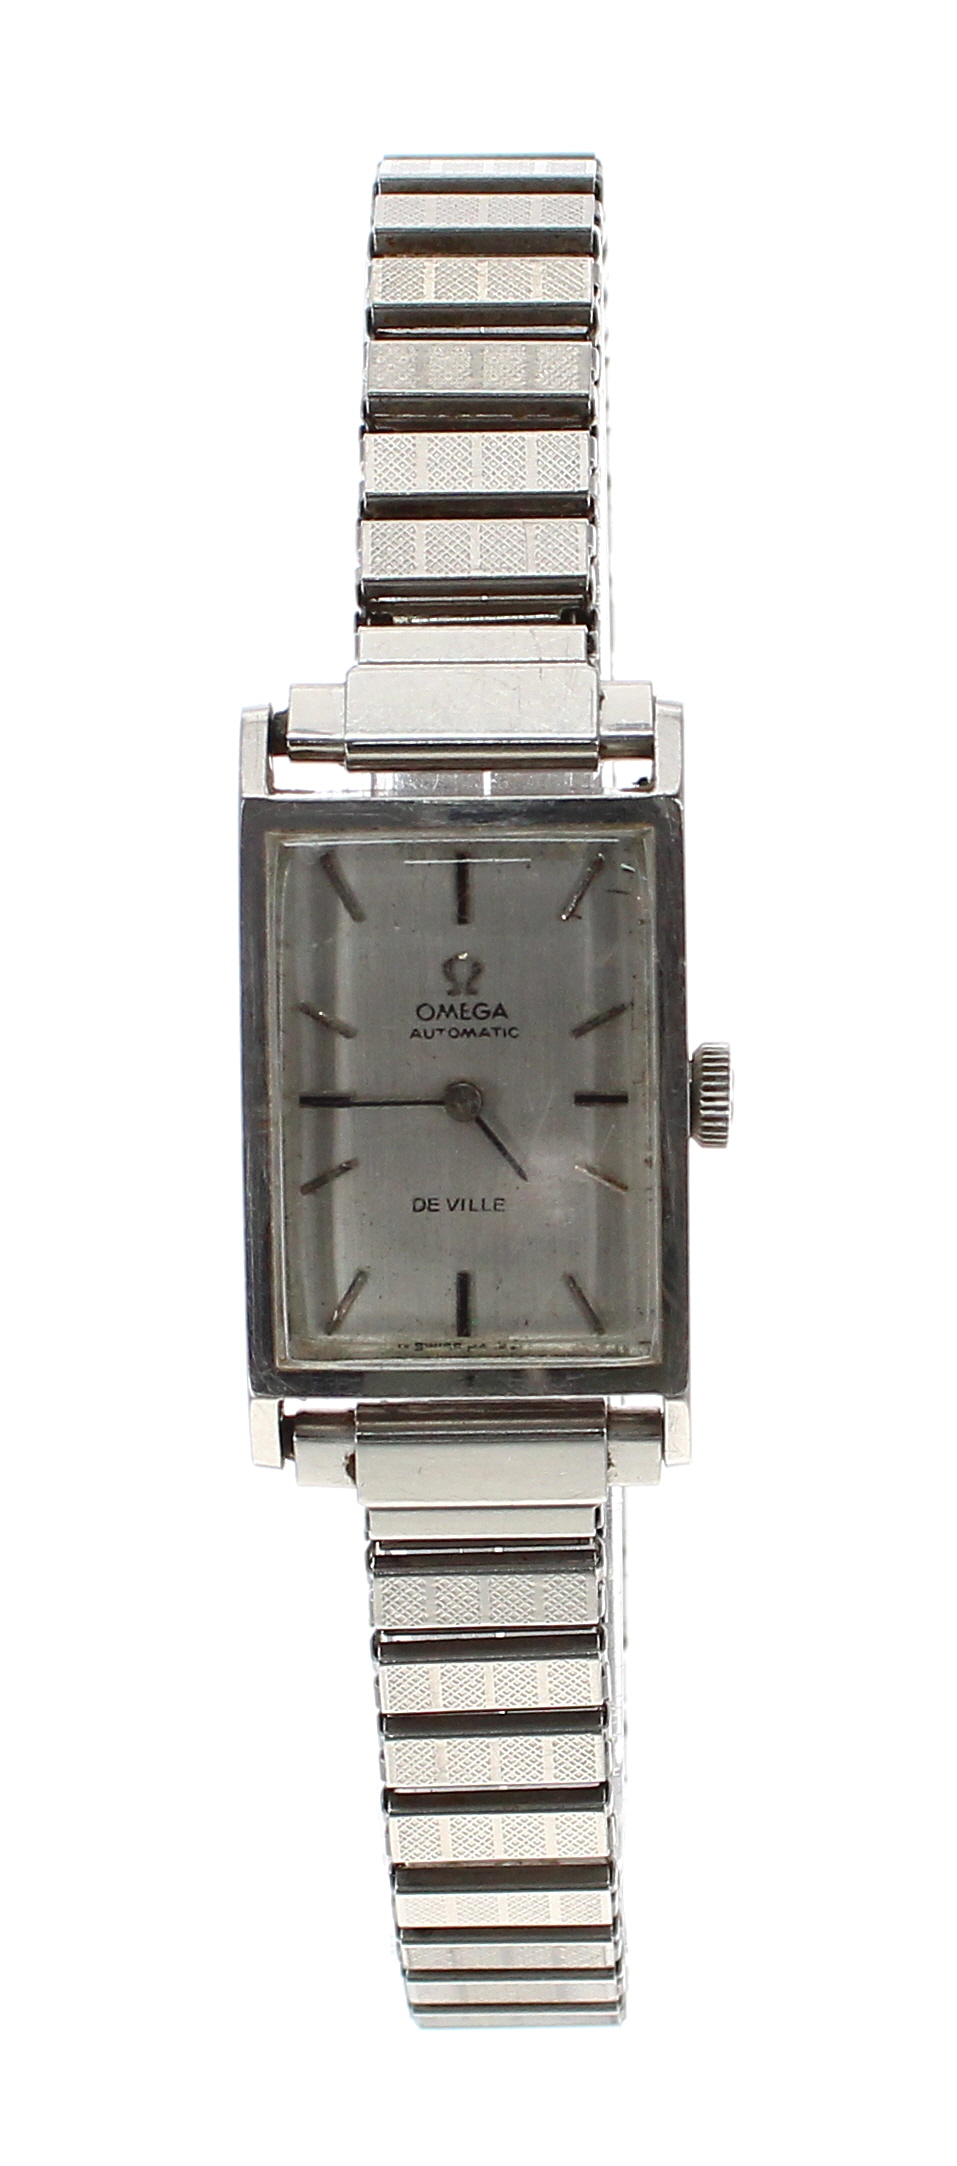 Lot 16 - Omega DeVille automatic rectangular stainless steel lady's bracelet watch, ref. 551.015, circa 1964,